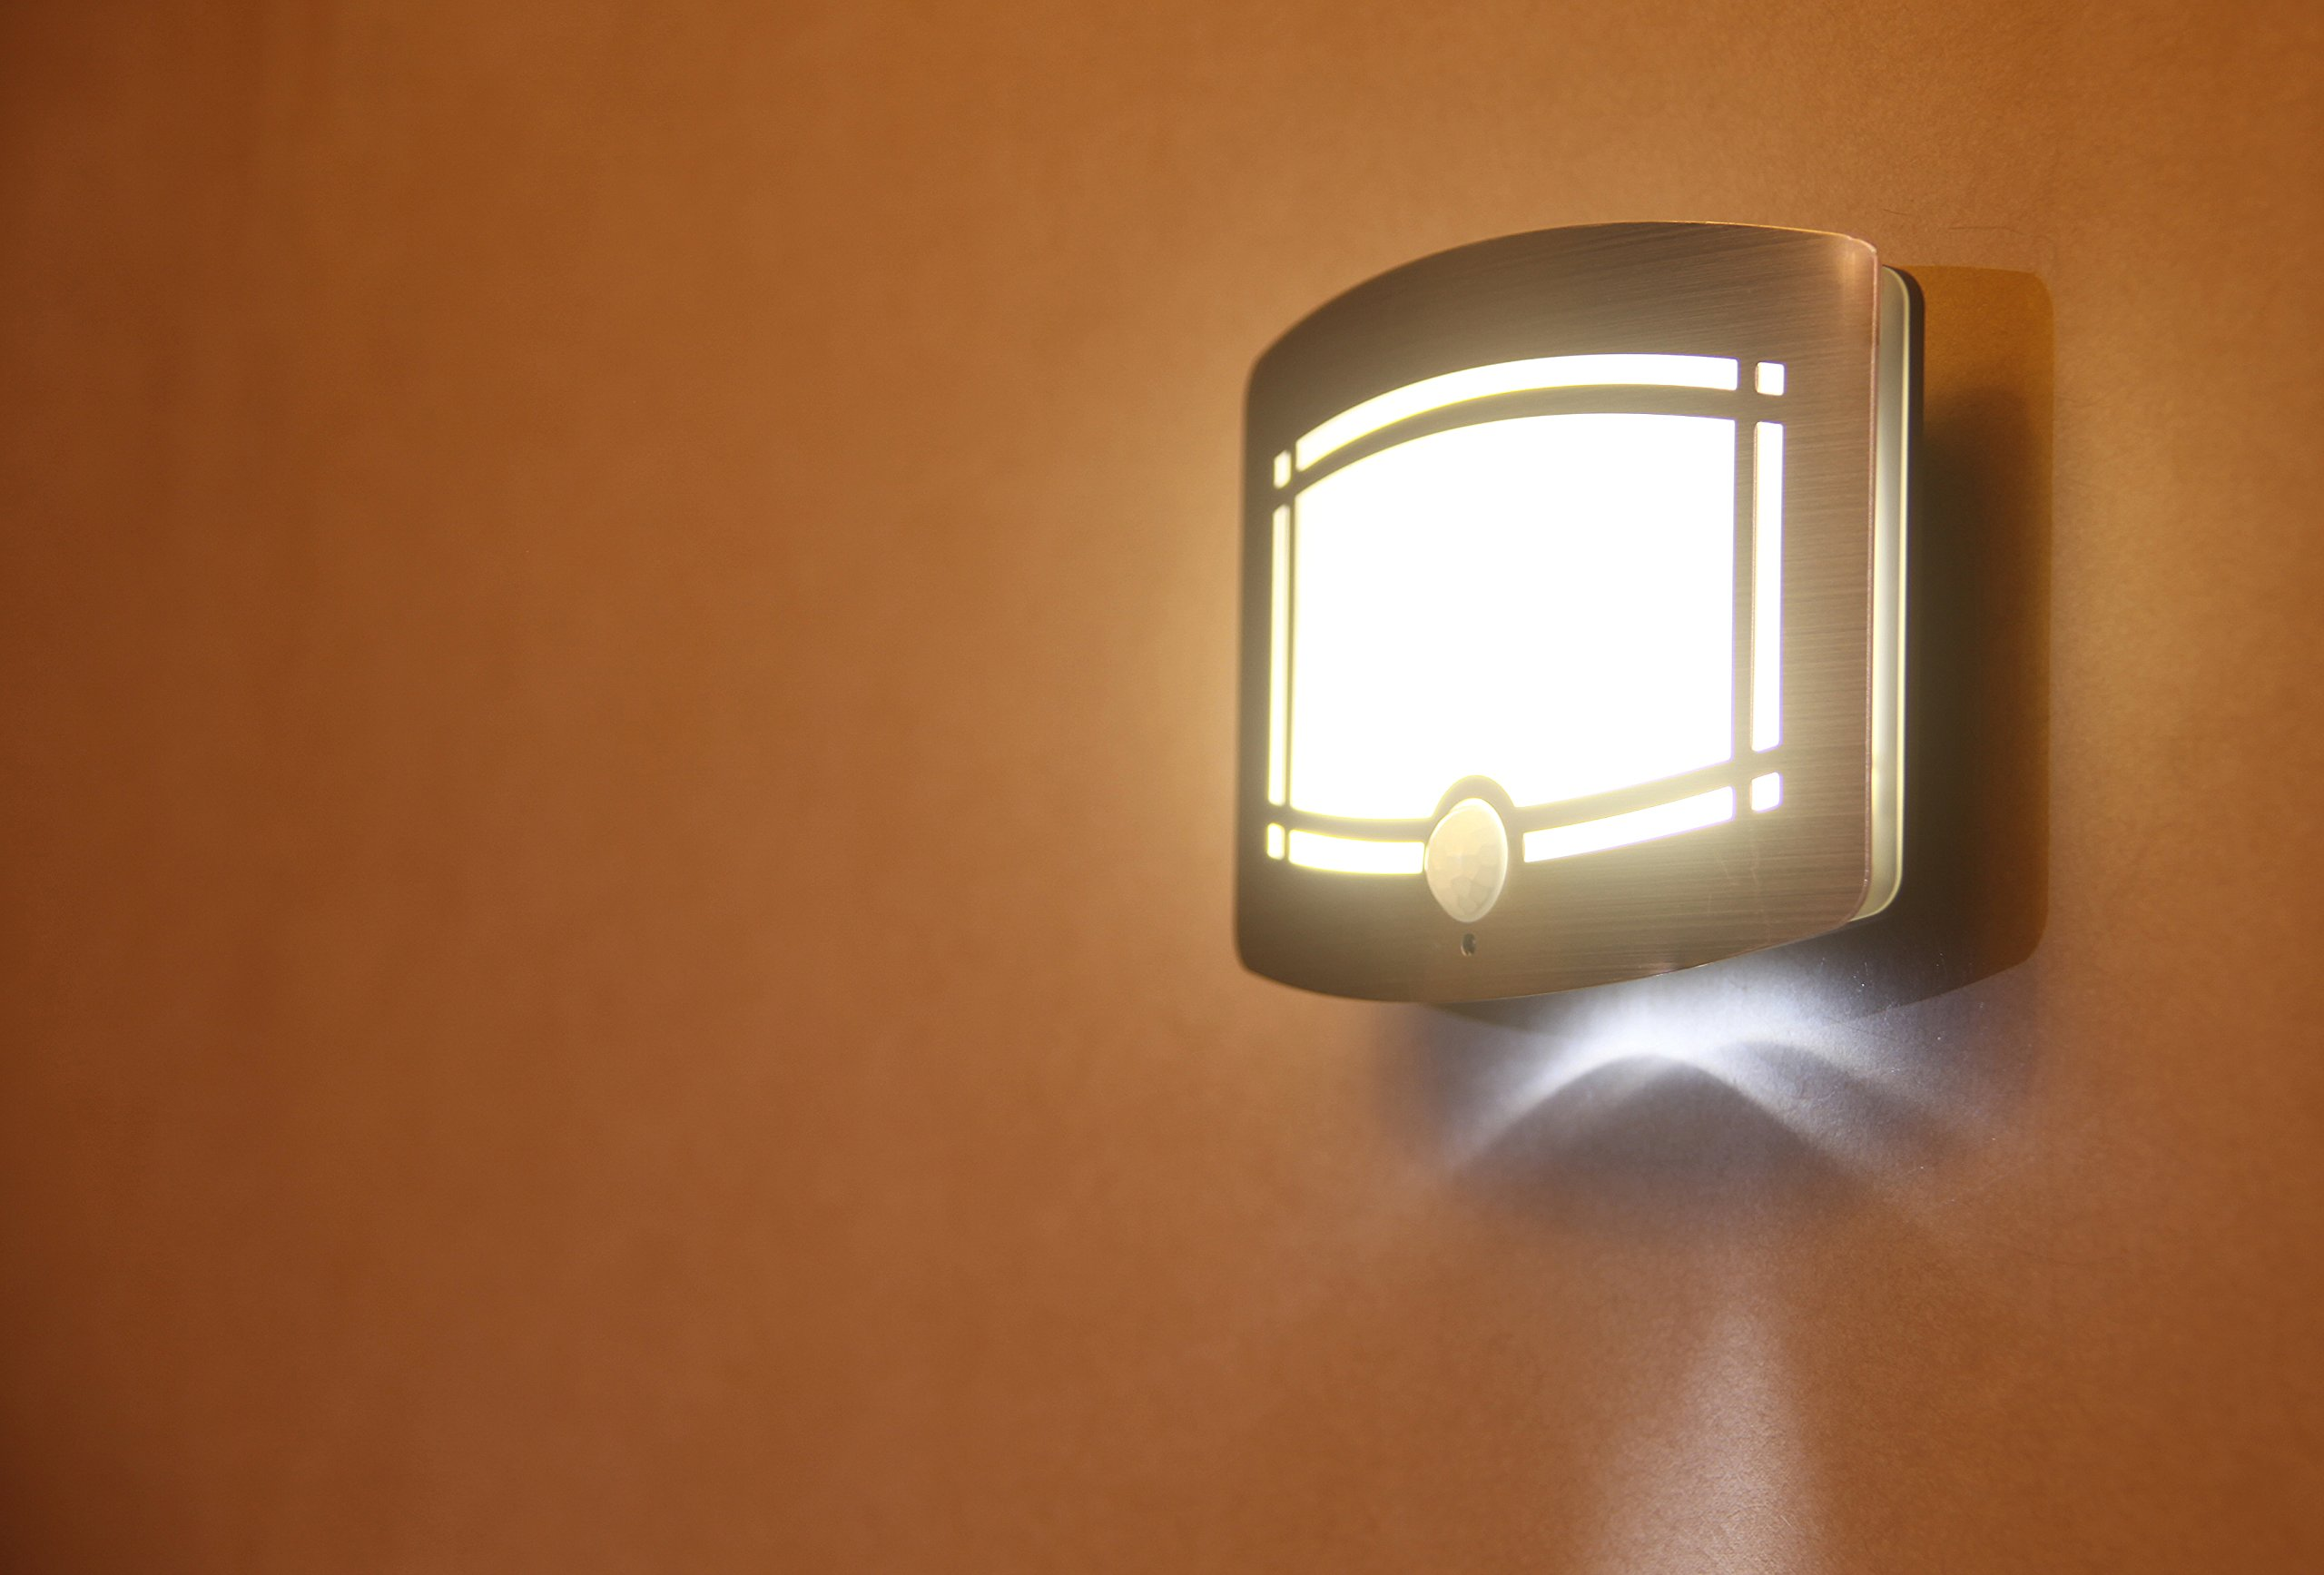 Motion Sensor Auto LED Night Light - Soft Warm White Wireless Wall Sconce Light Controlled by Motion Activated Sensing & Light Sensor - Stick on Anywhere Wireless Battery Powered (Not included) by WISLIGHT (Image #9)